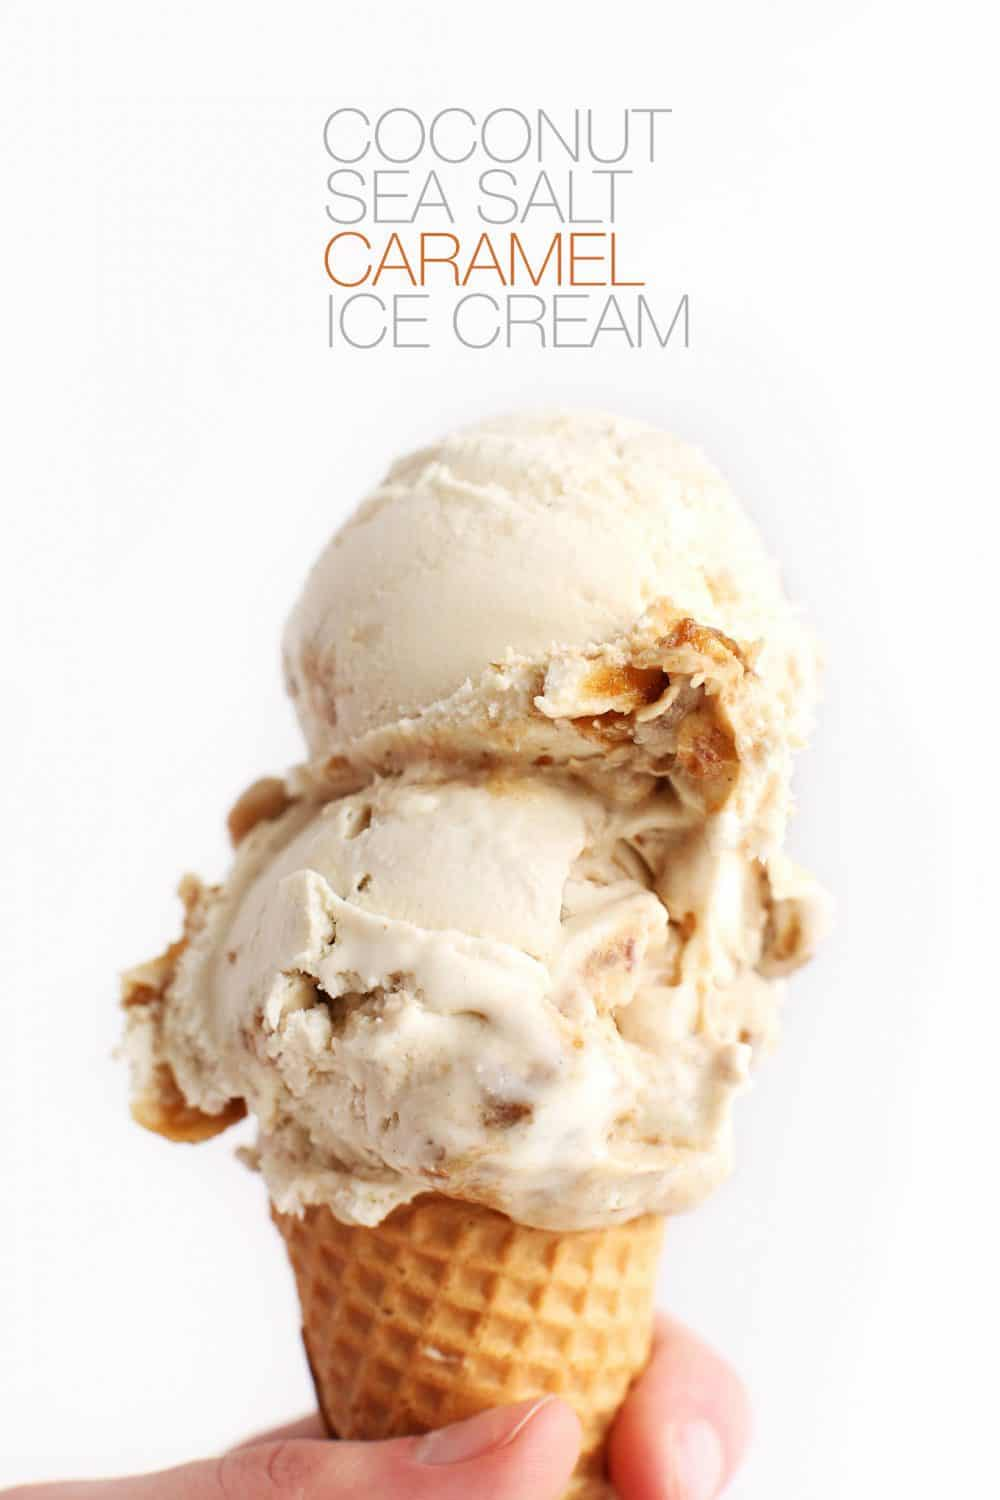 Sea salt caramel coconut ice cream